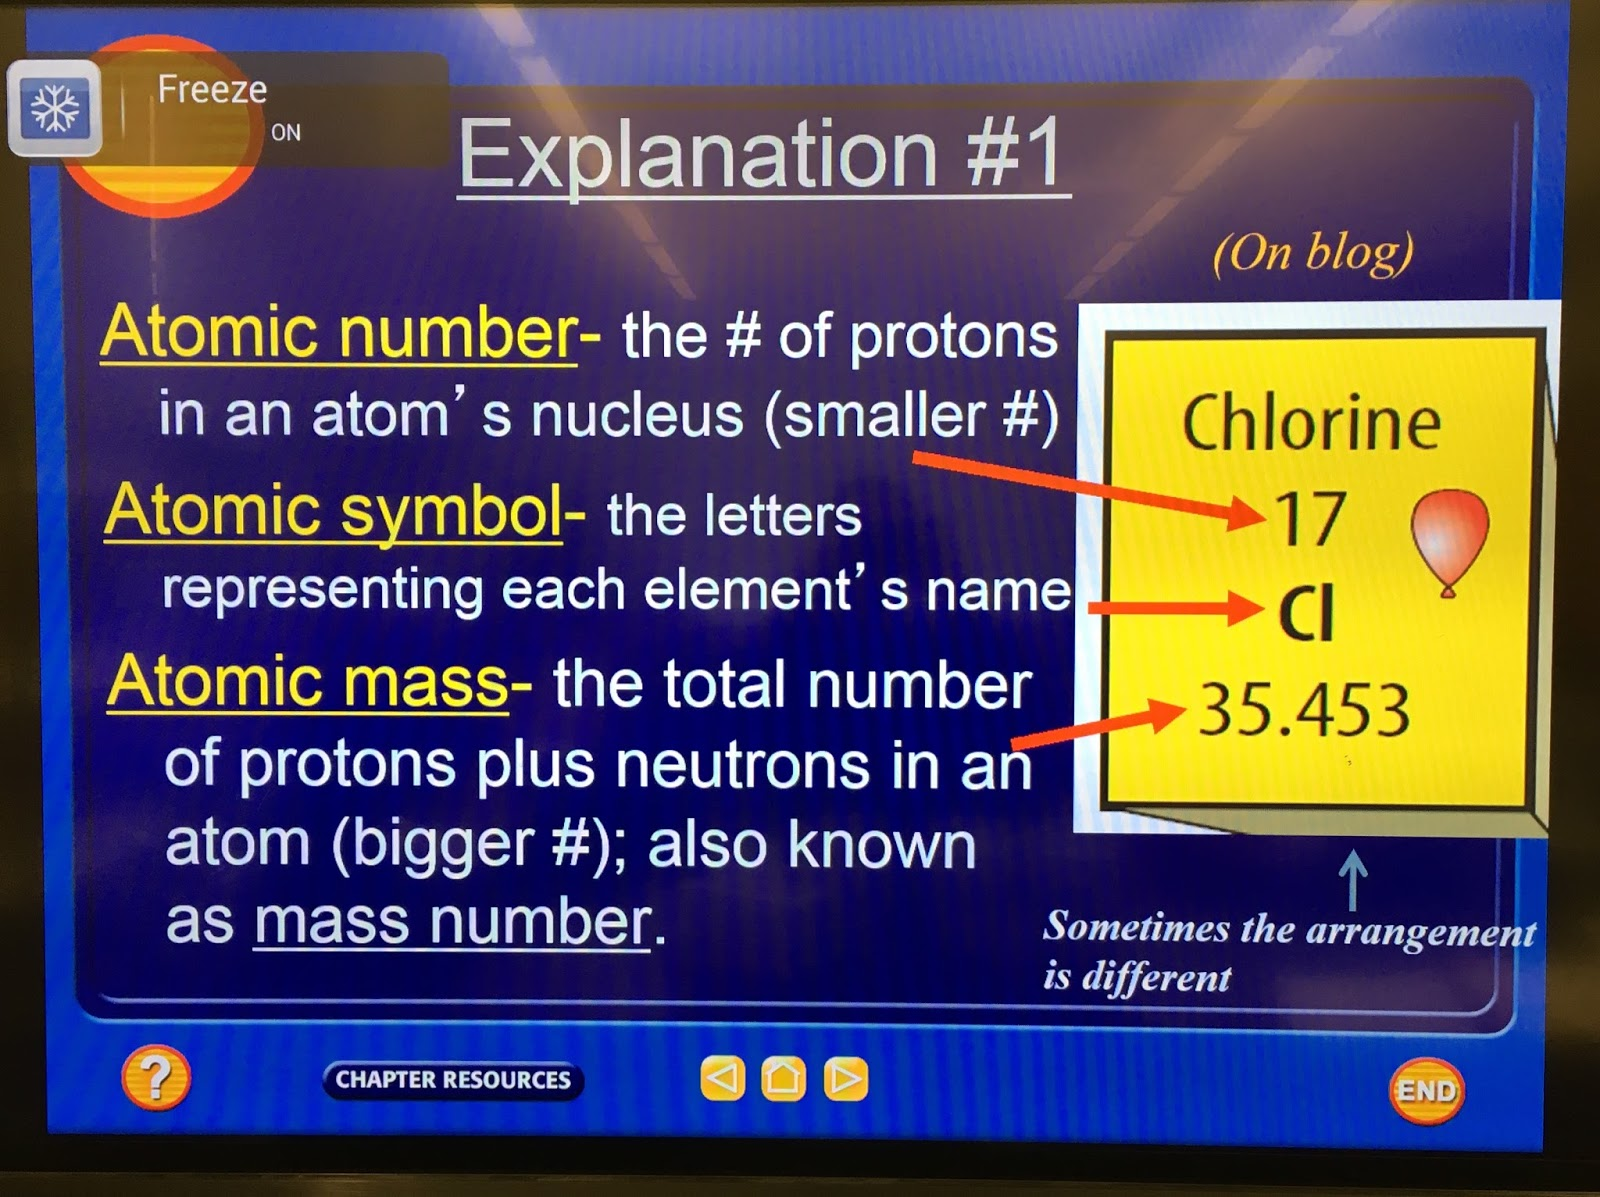 Mr villas 7th gd science class periodic table analyzing an element these pictures shown in class indicate what the numbers and symbols mean for each element found on the periodic table study this you will be tested on it urtaz Choice Image